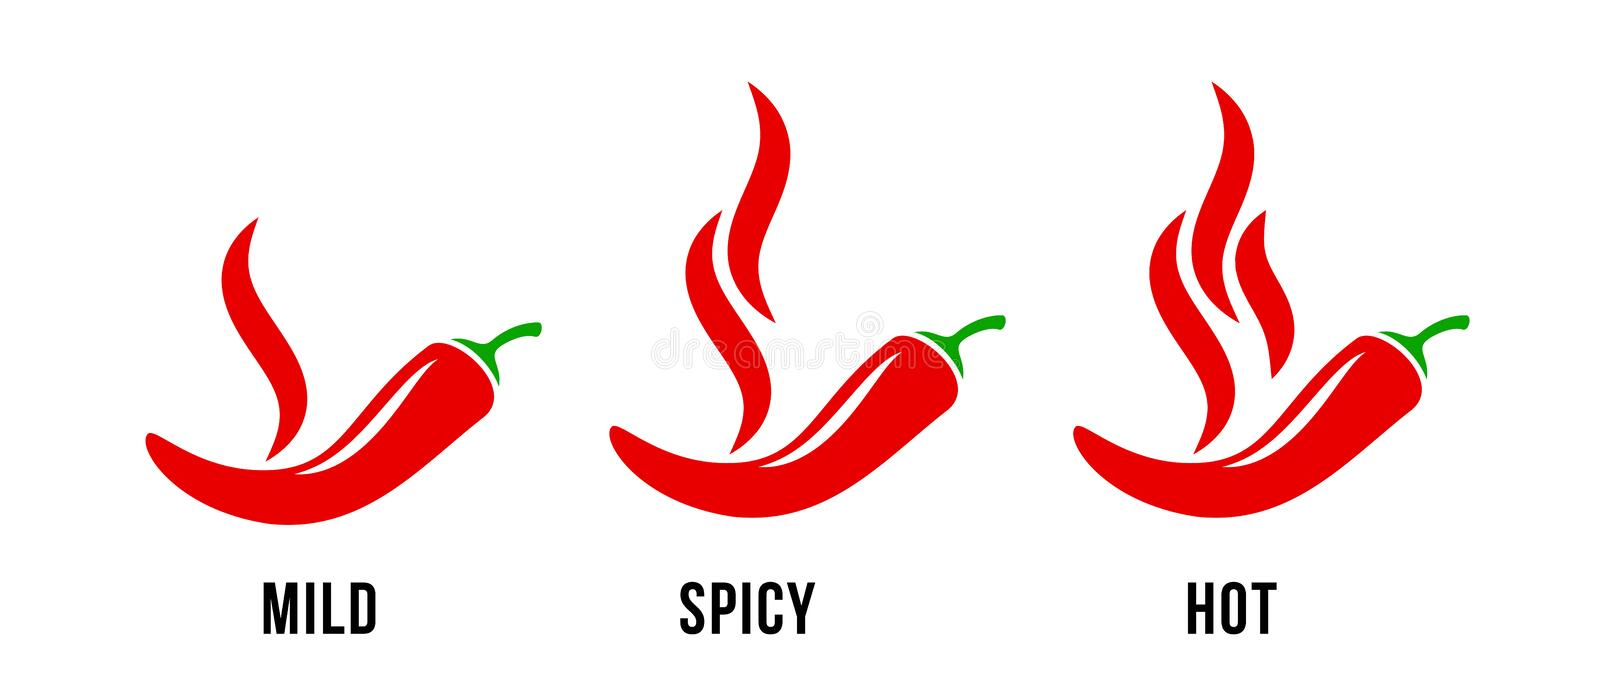 Spicy chili hot pepper, food spice level, vector red pepper fire flame icons. Labels vector illustration